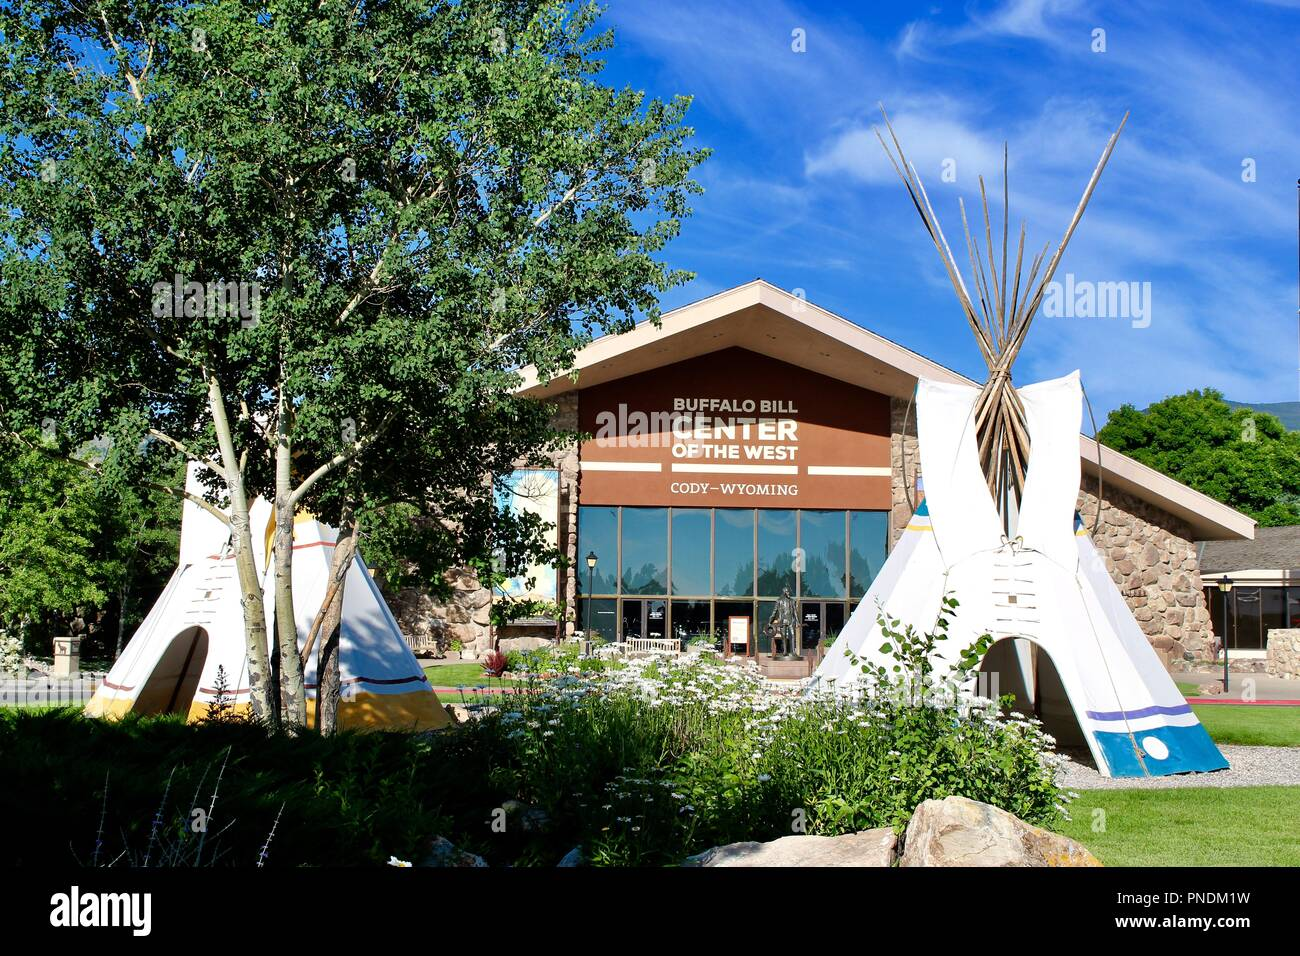 Entrance to the Buffalo Bill Center of the West Museum in Cody Wyoming USA. Step into an plains Indian home and look around - Stock Image